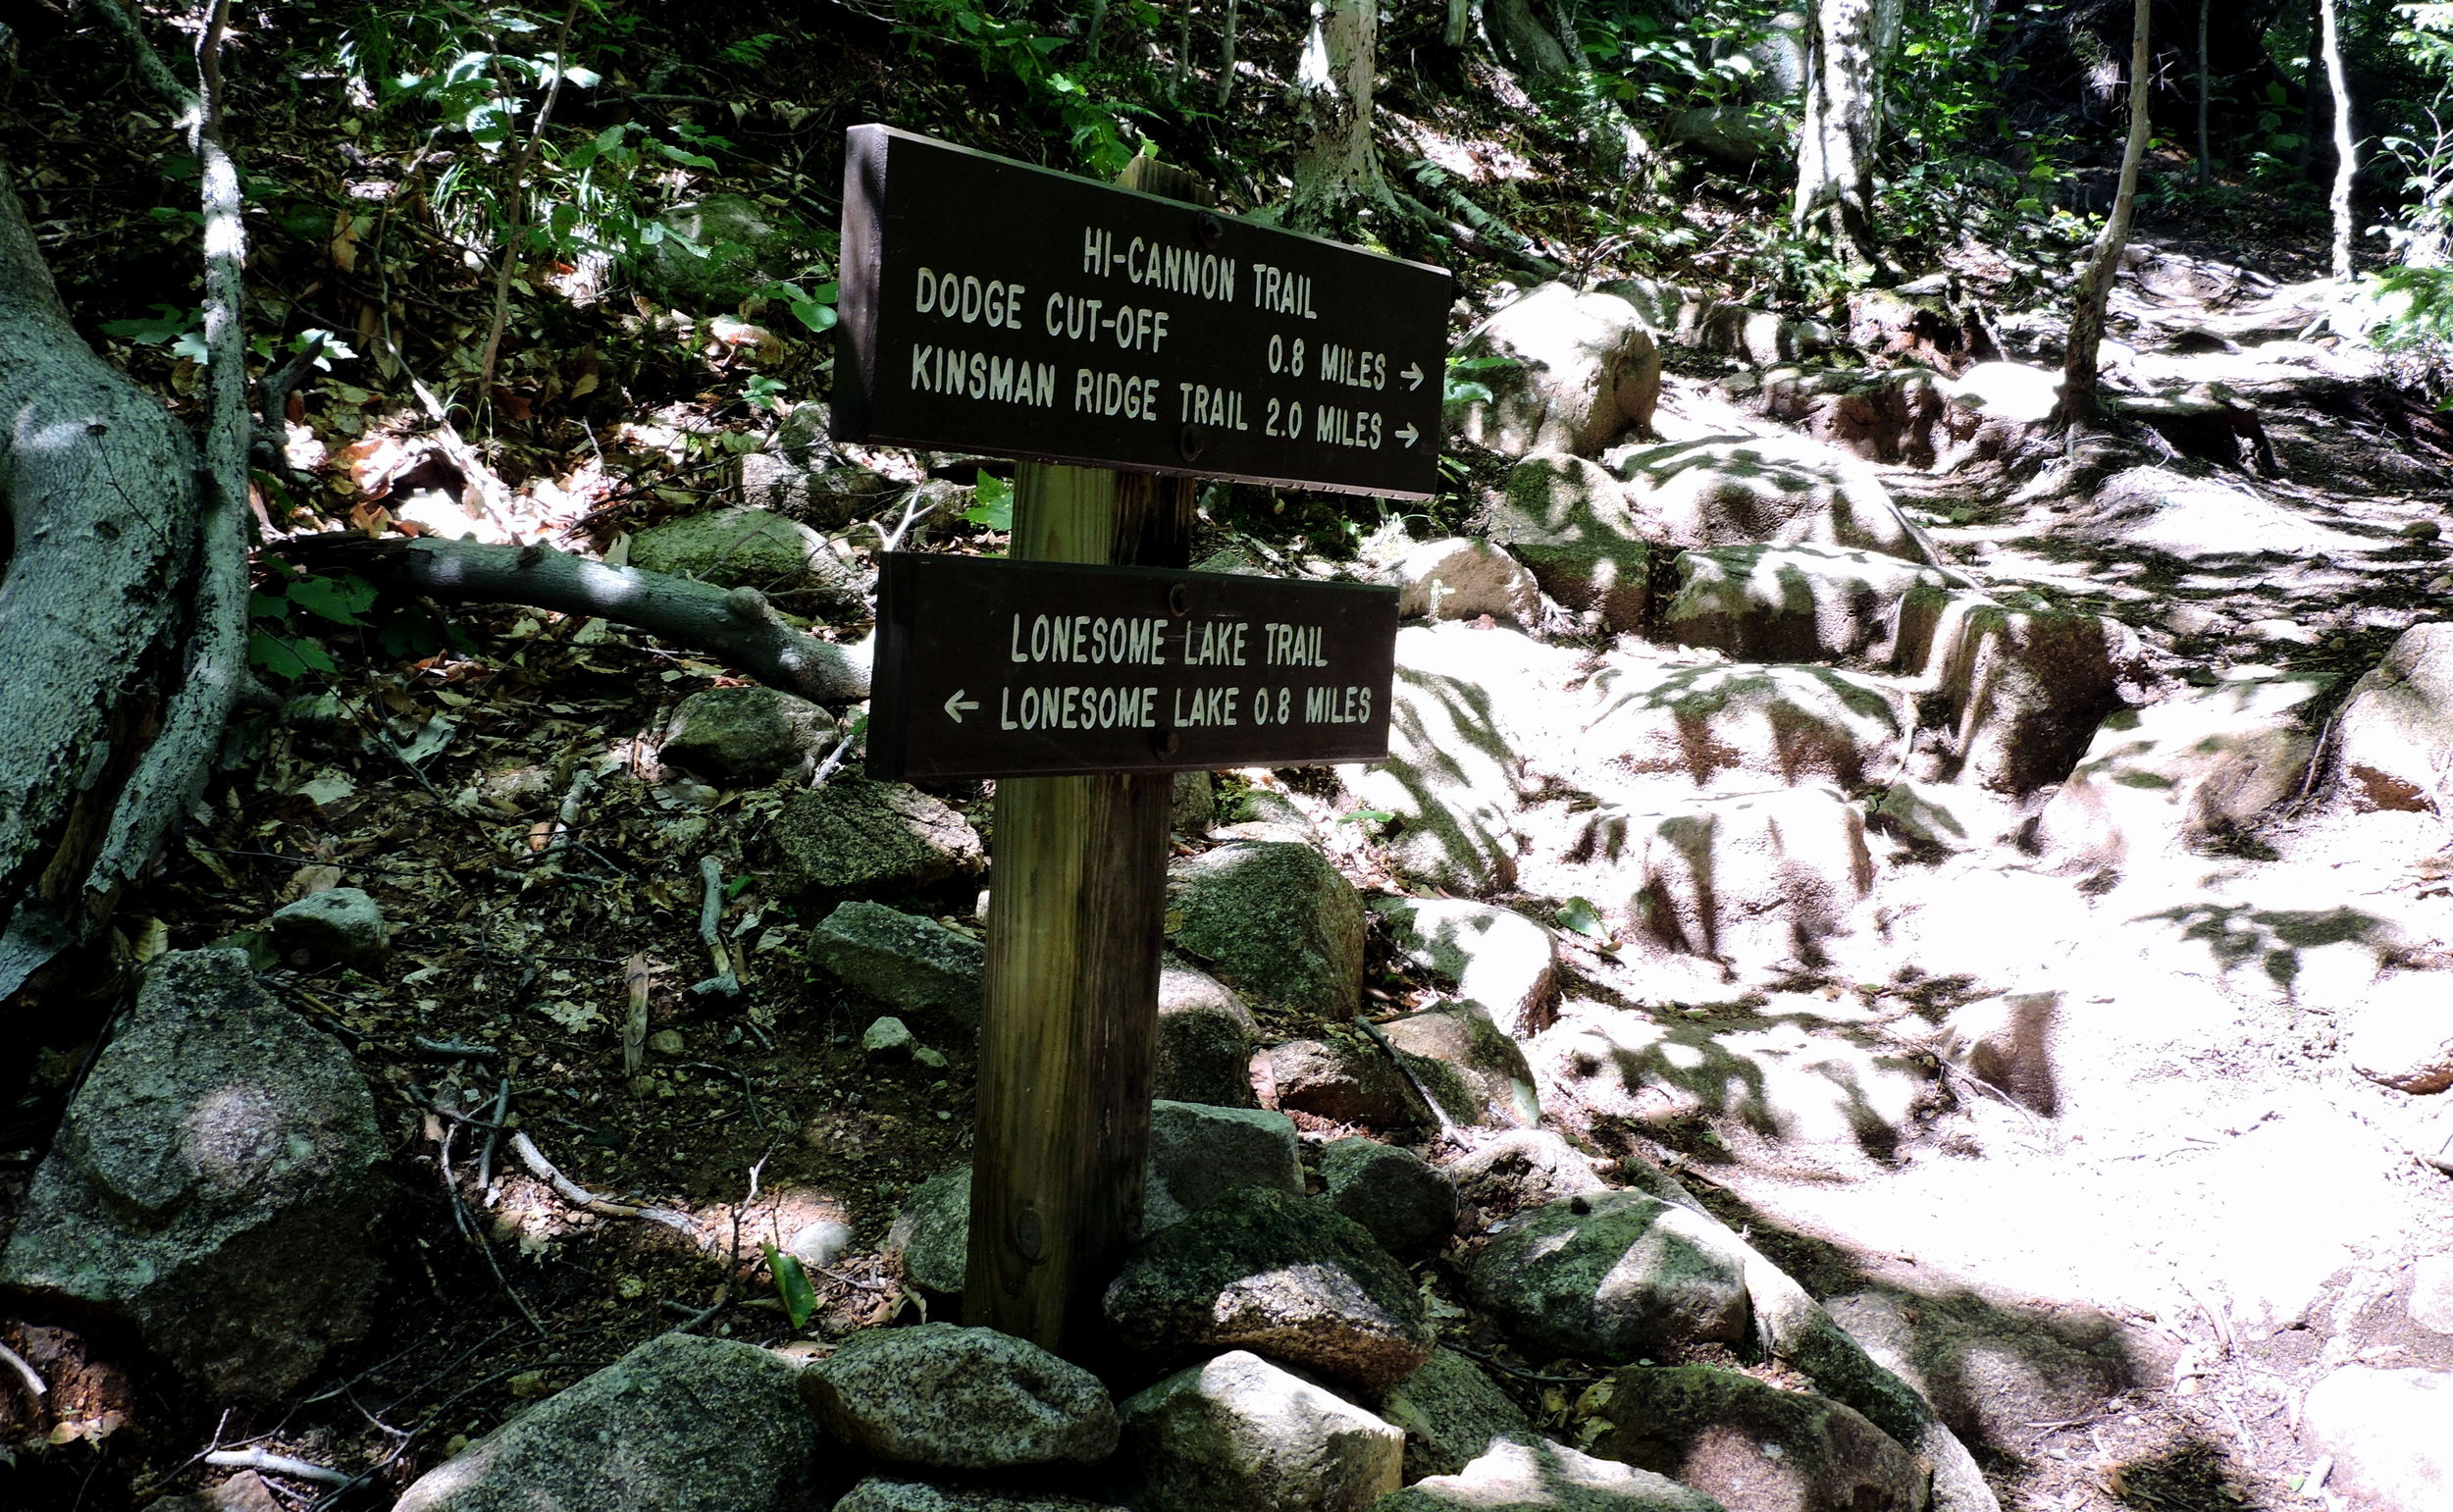 Signs are frequently used for helping hikers find their way through the state forest. This sign pointed Ariele and Josh towards Lonesome Lake.